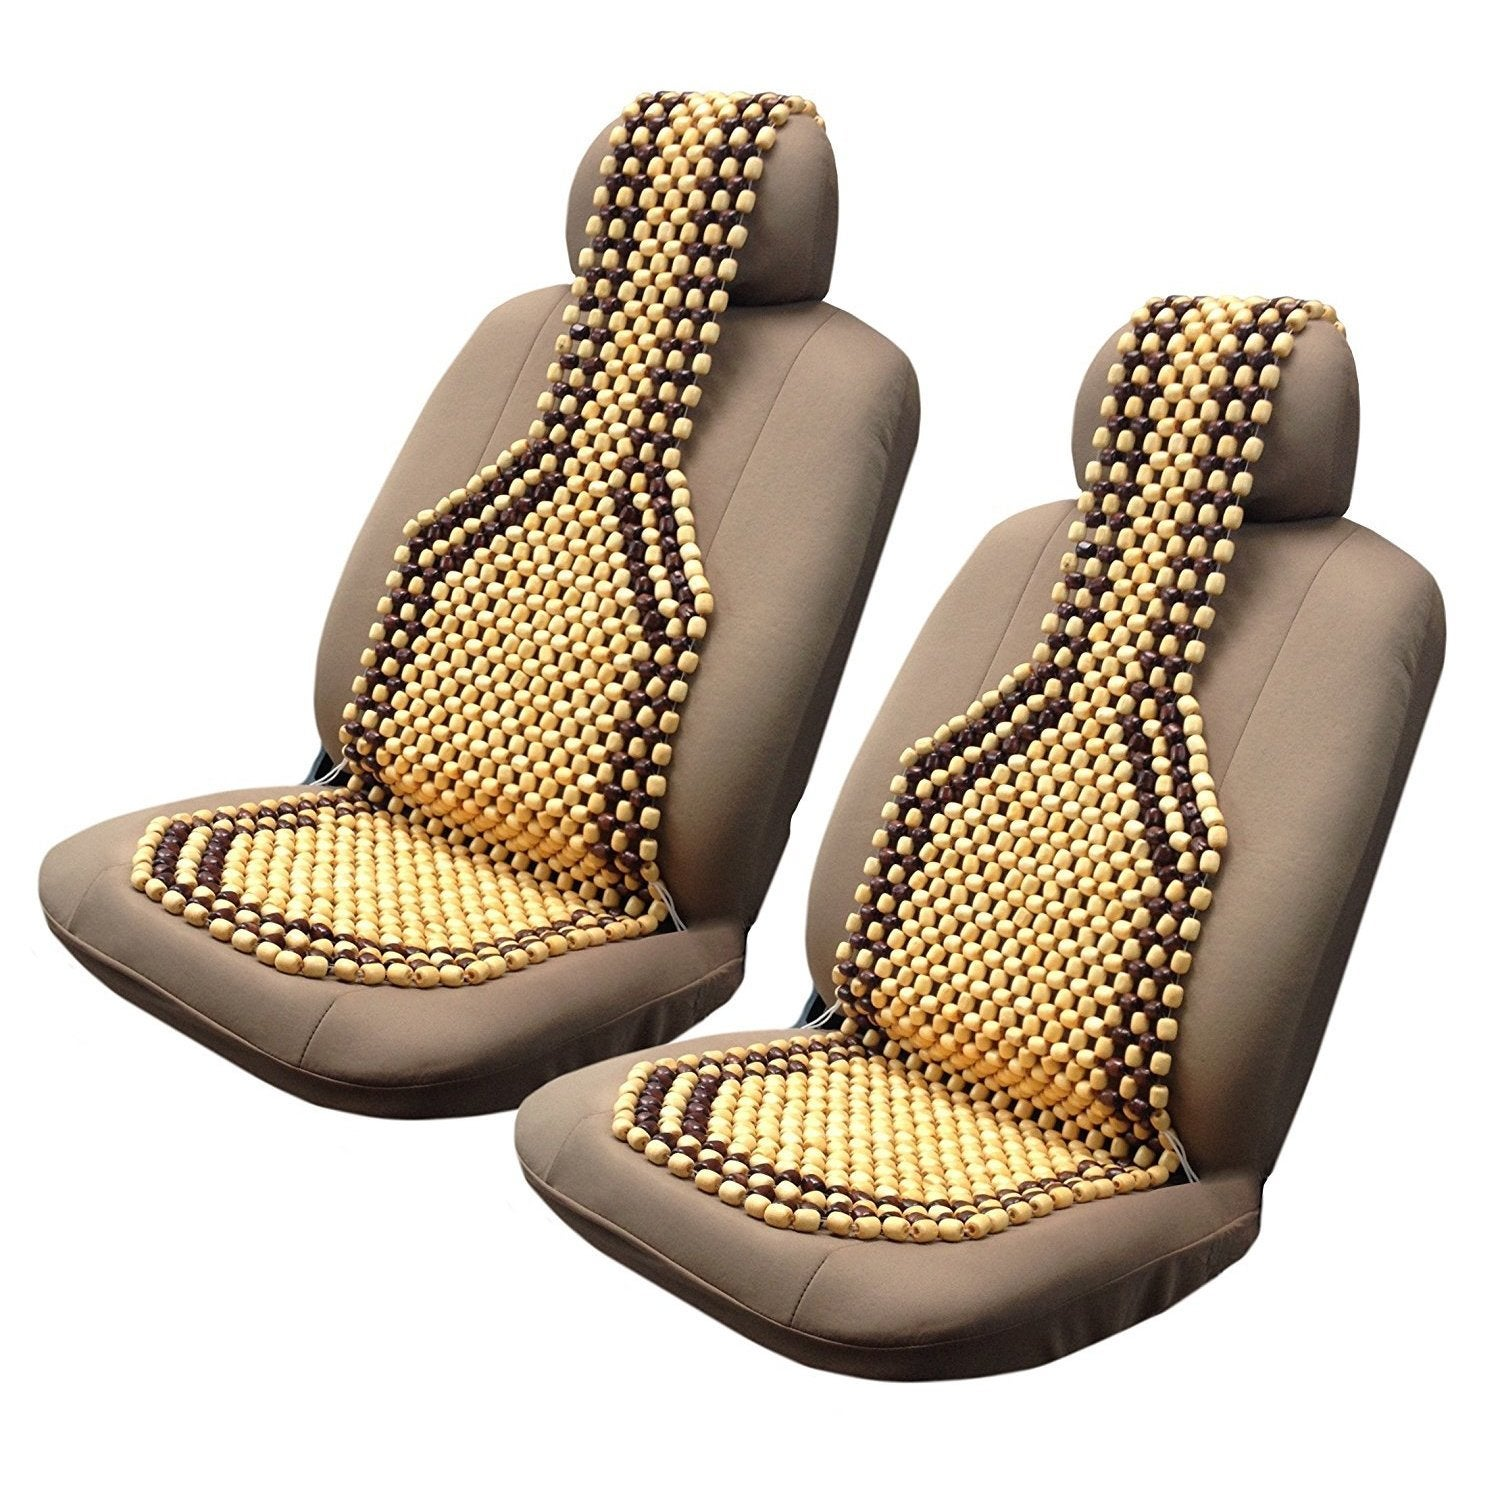 Unique Industries 2pk Two Tone Wooden Bead Seat Covers Cu...